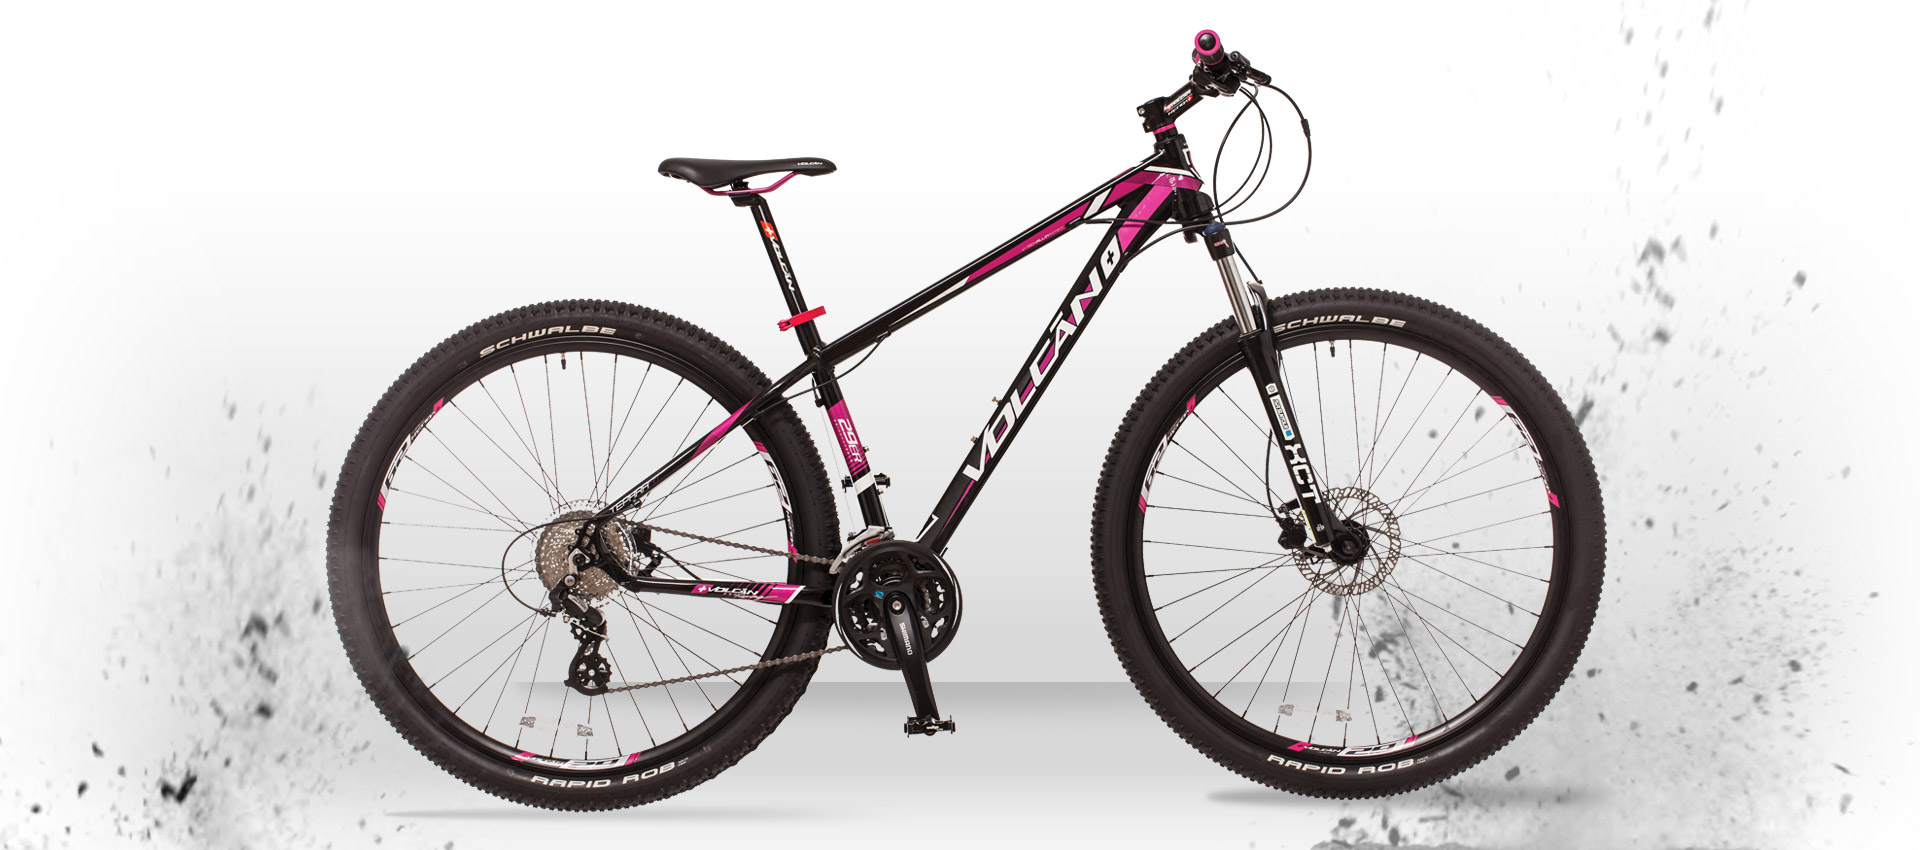 TEPHRA HT Volcan Bicycles